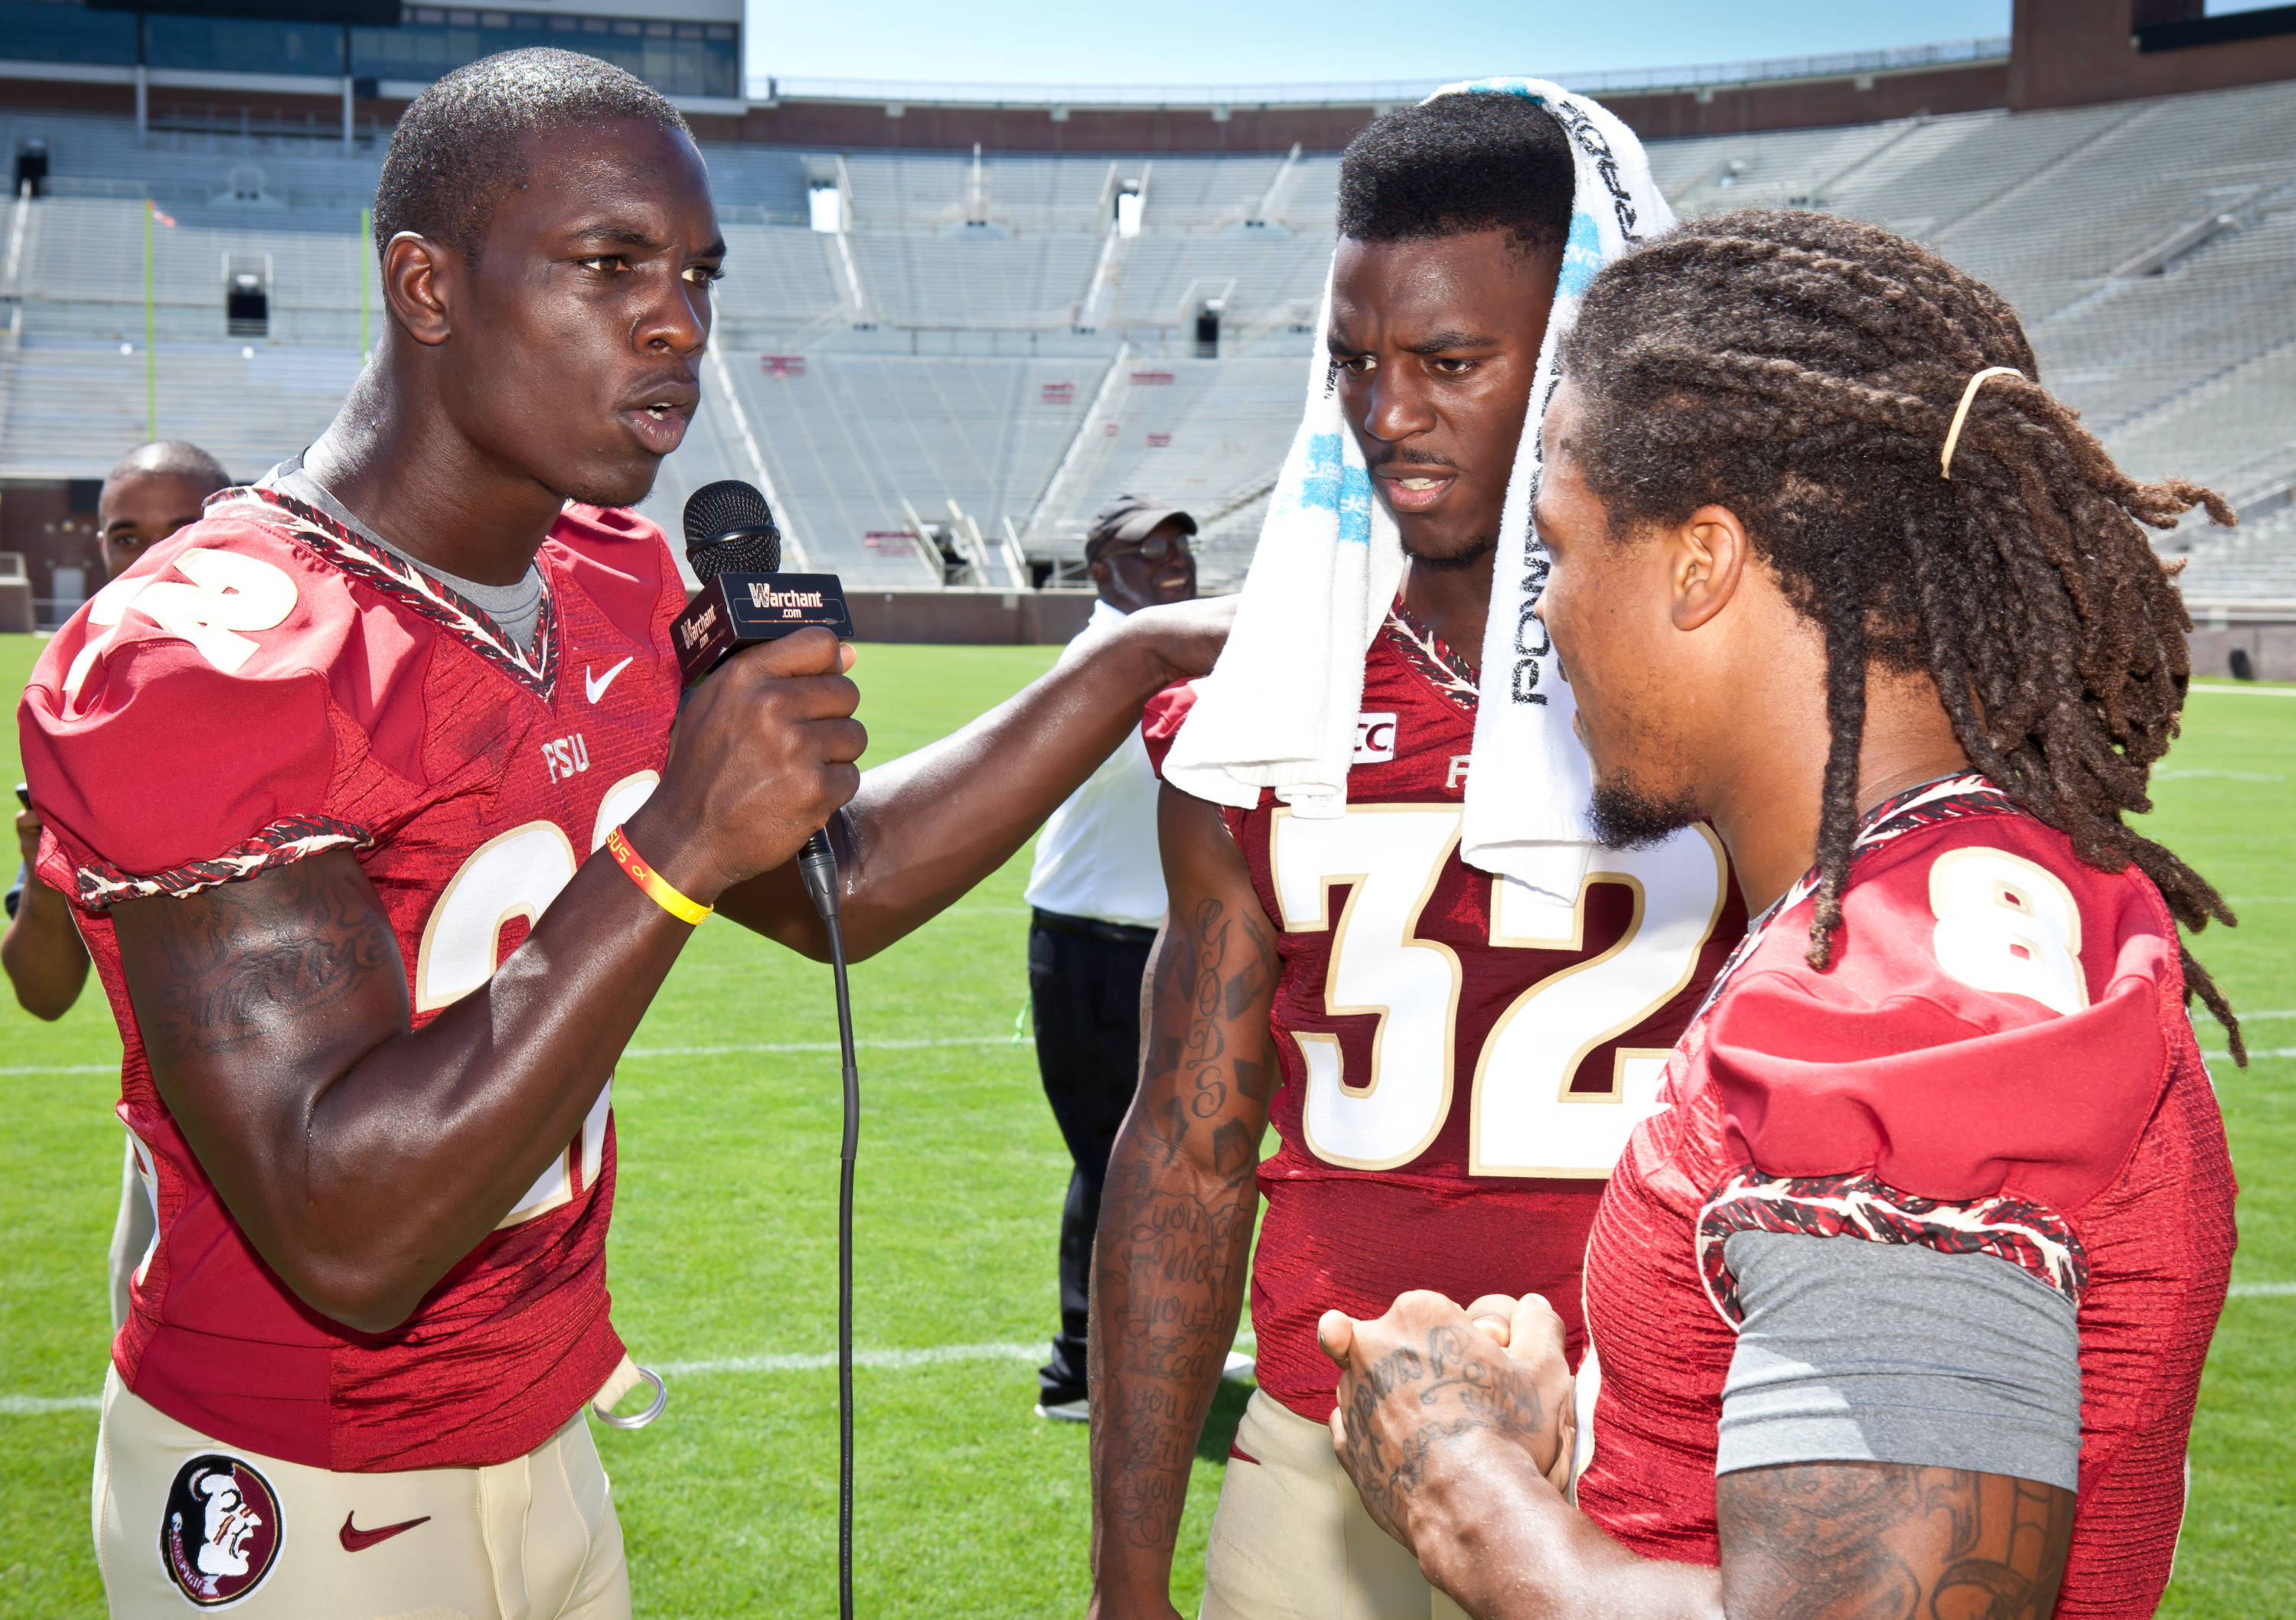 Telvin Smith takes his turn behind the microphone  interviewing running backs James Wilder Jr. and Devonta Freeman.